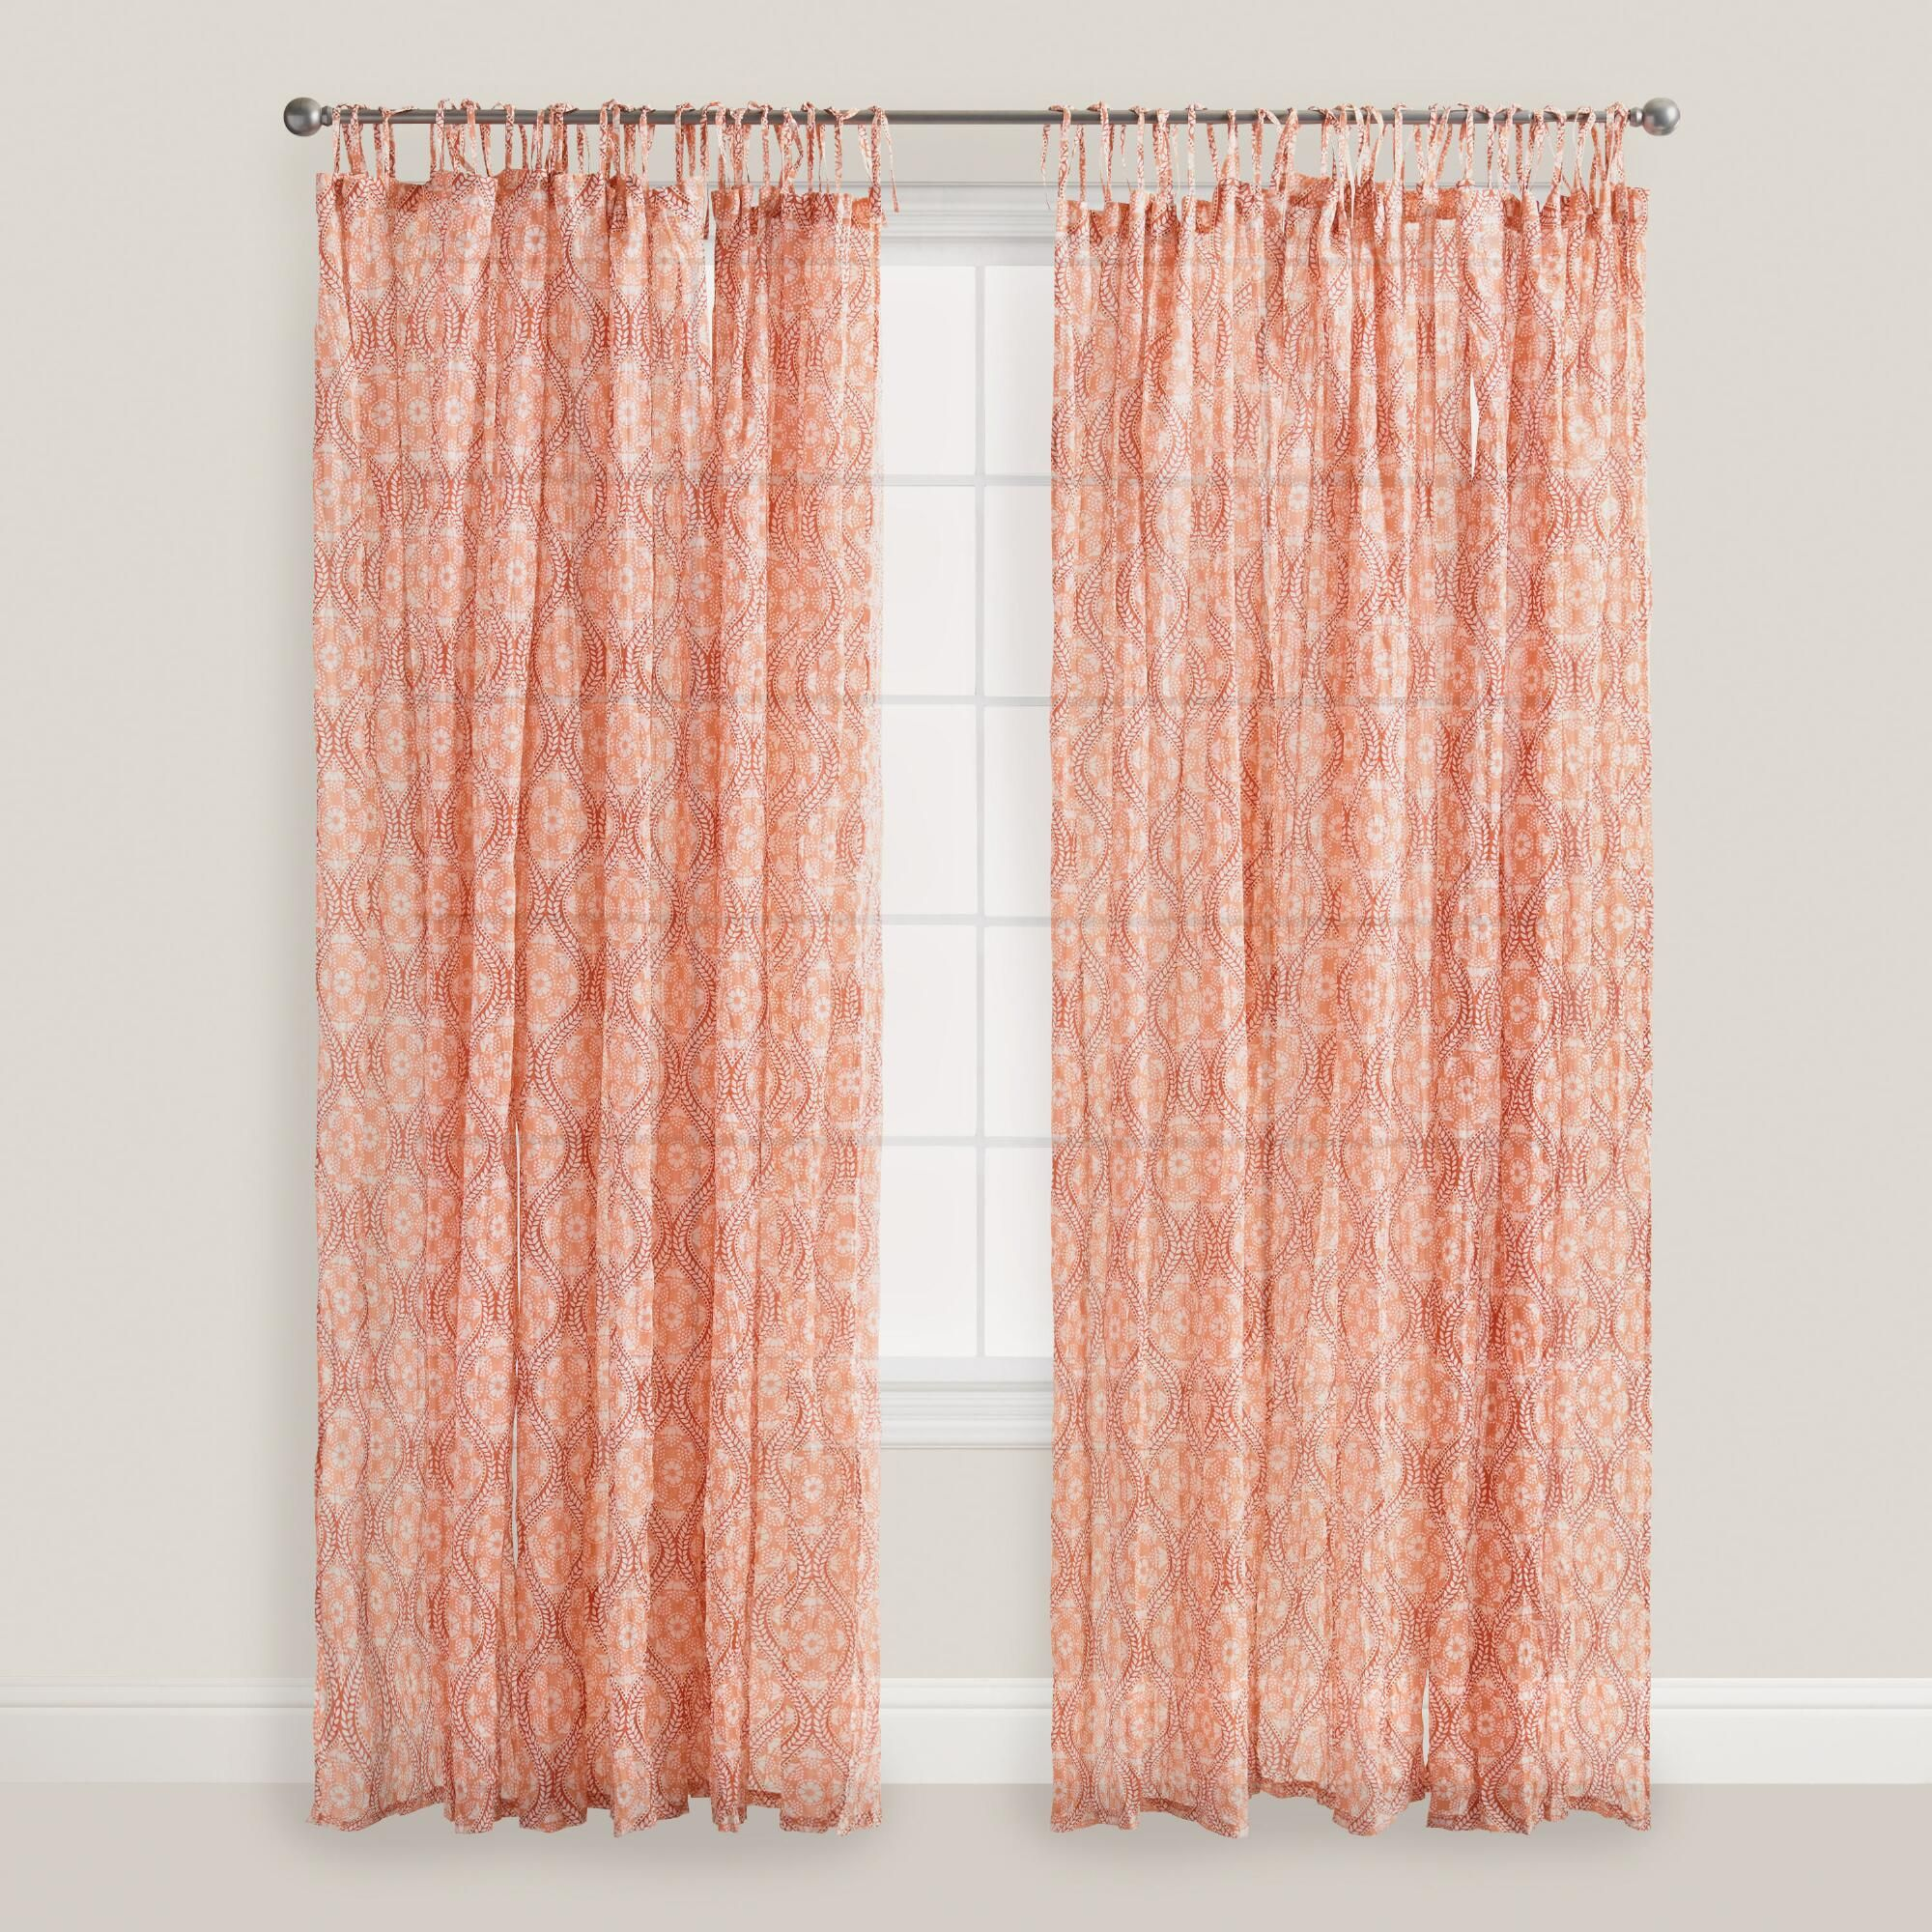 $39.99 crafted of cotton voile with our coral ogee medallion